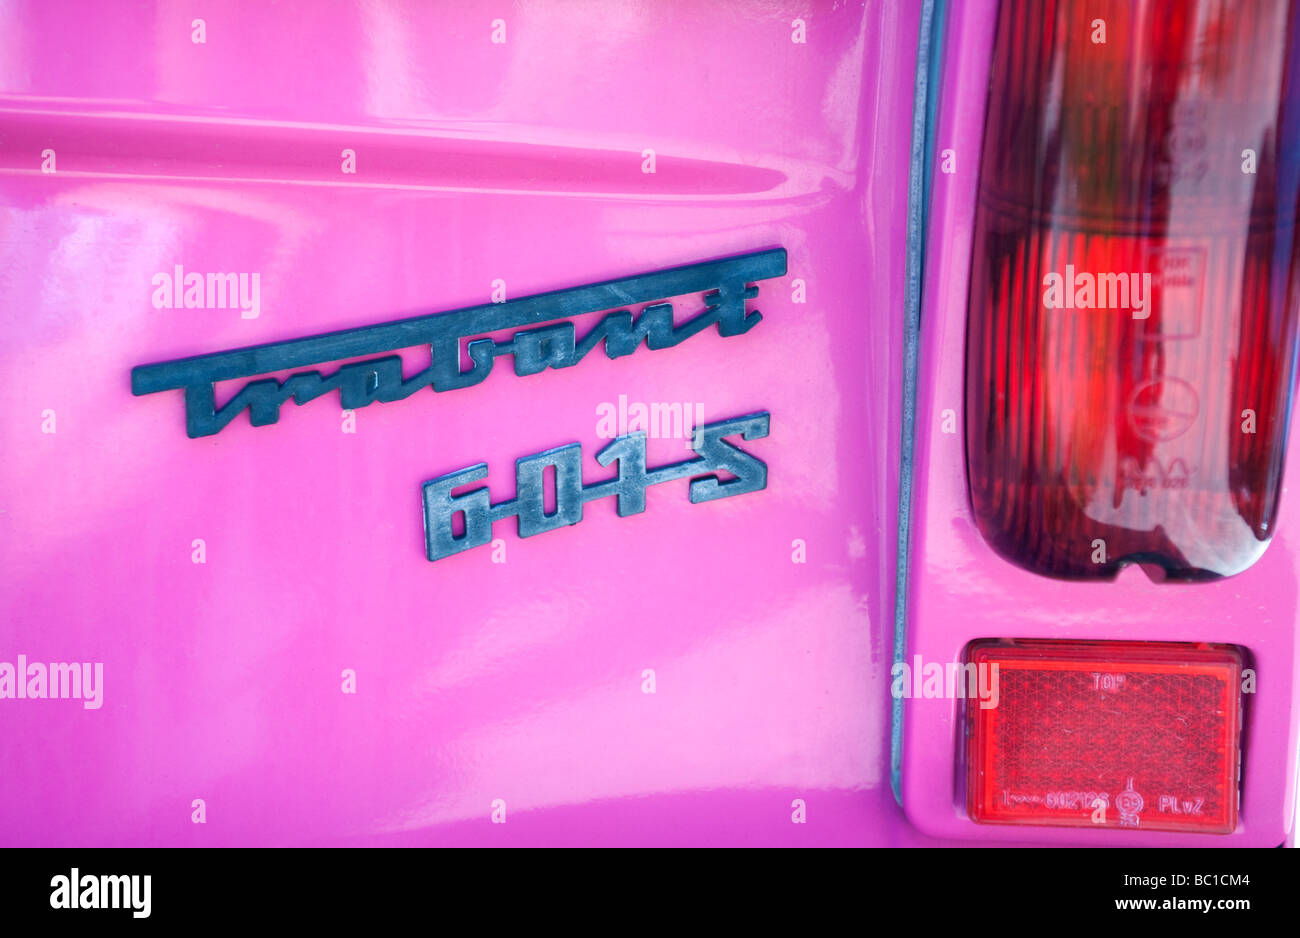 Detail of pink Trabant car built in the former East Germany Stock Photo